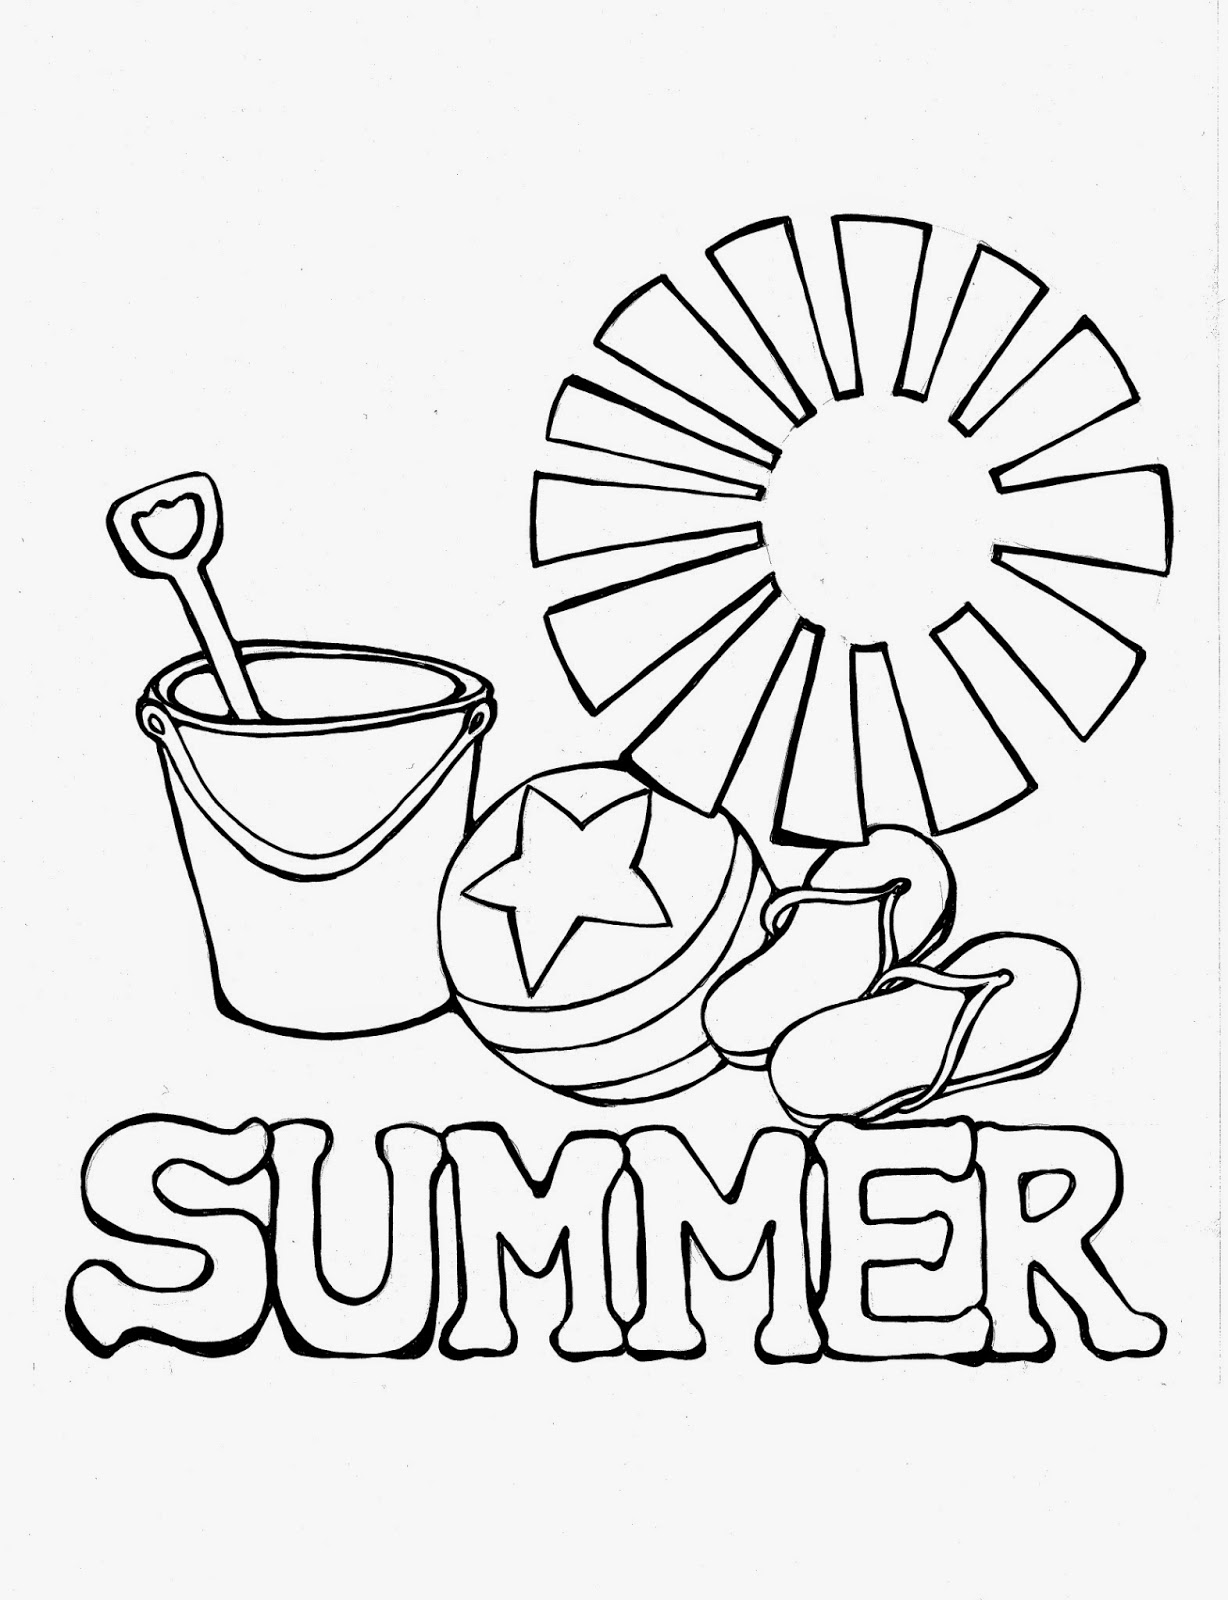 printable coloring pages summer activities printable summer coloring pages printable coloring summer pages activities